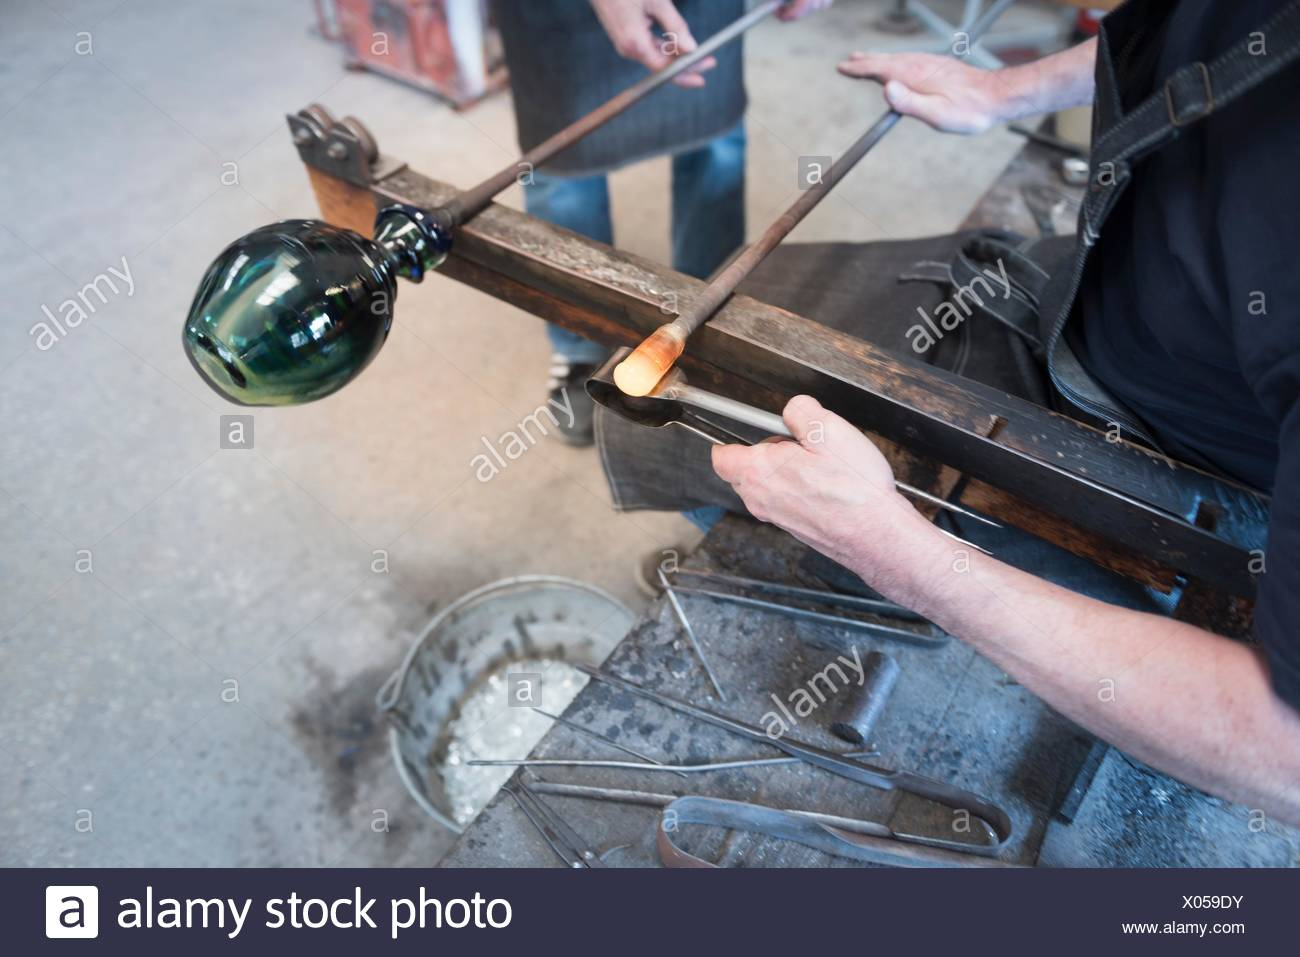 Glassblower forming hot glass - Stock Image